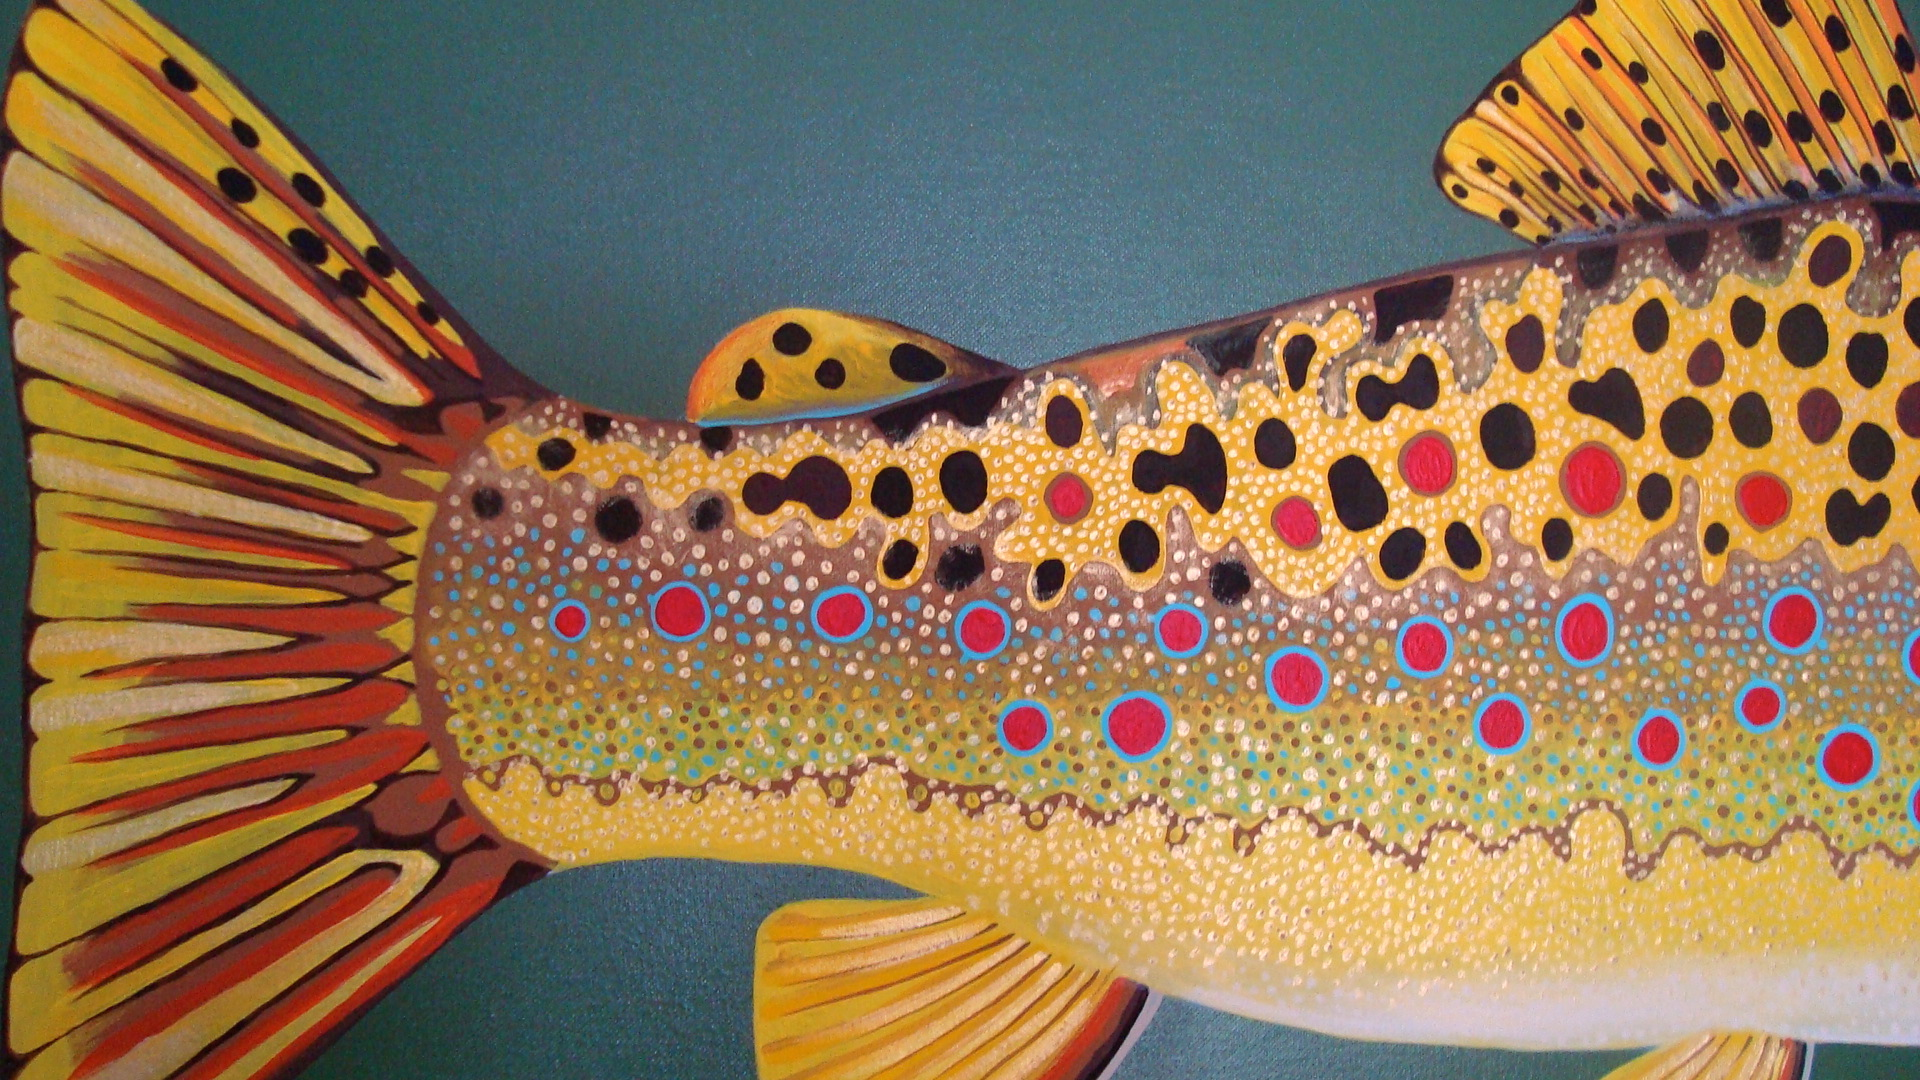 rainbow trout wallpaper wallpapersafari